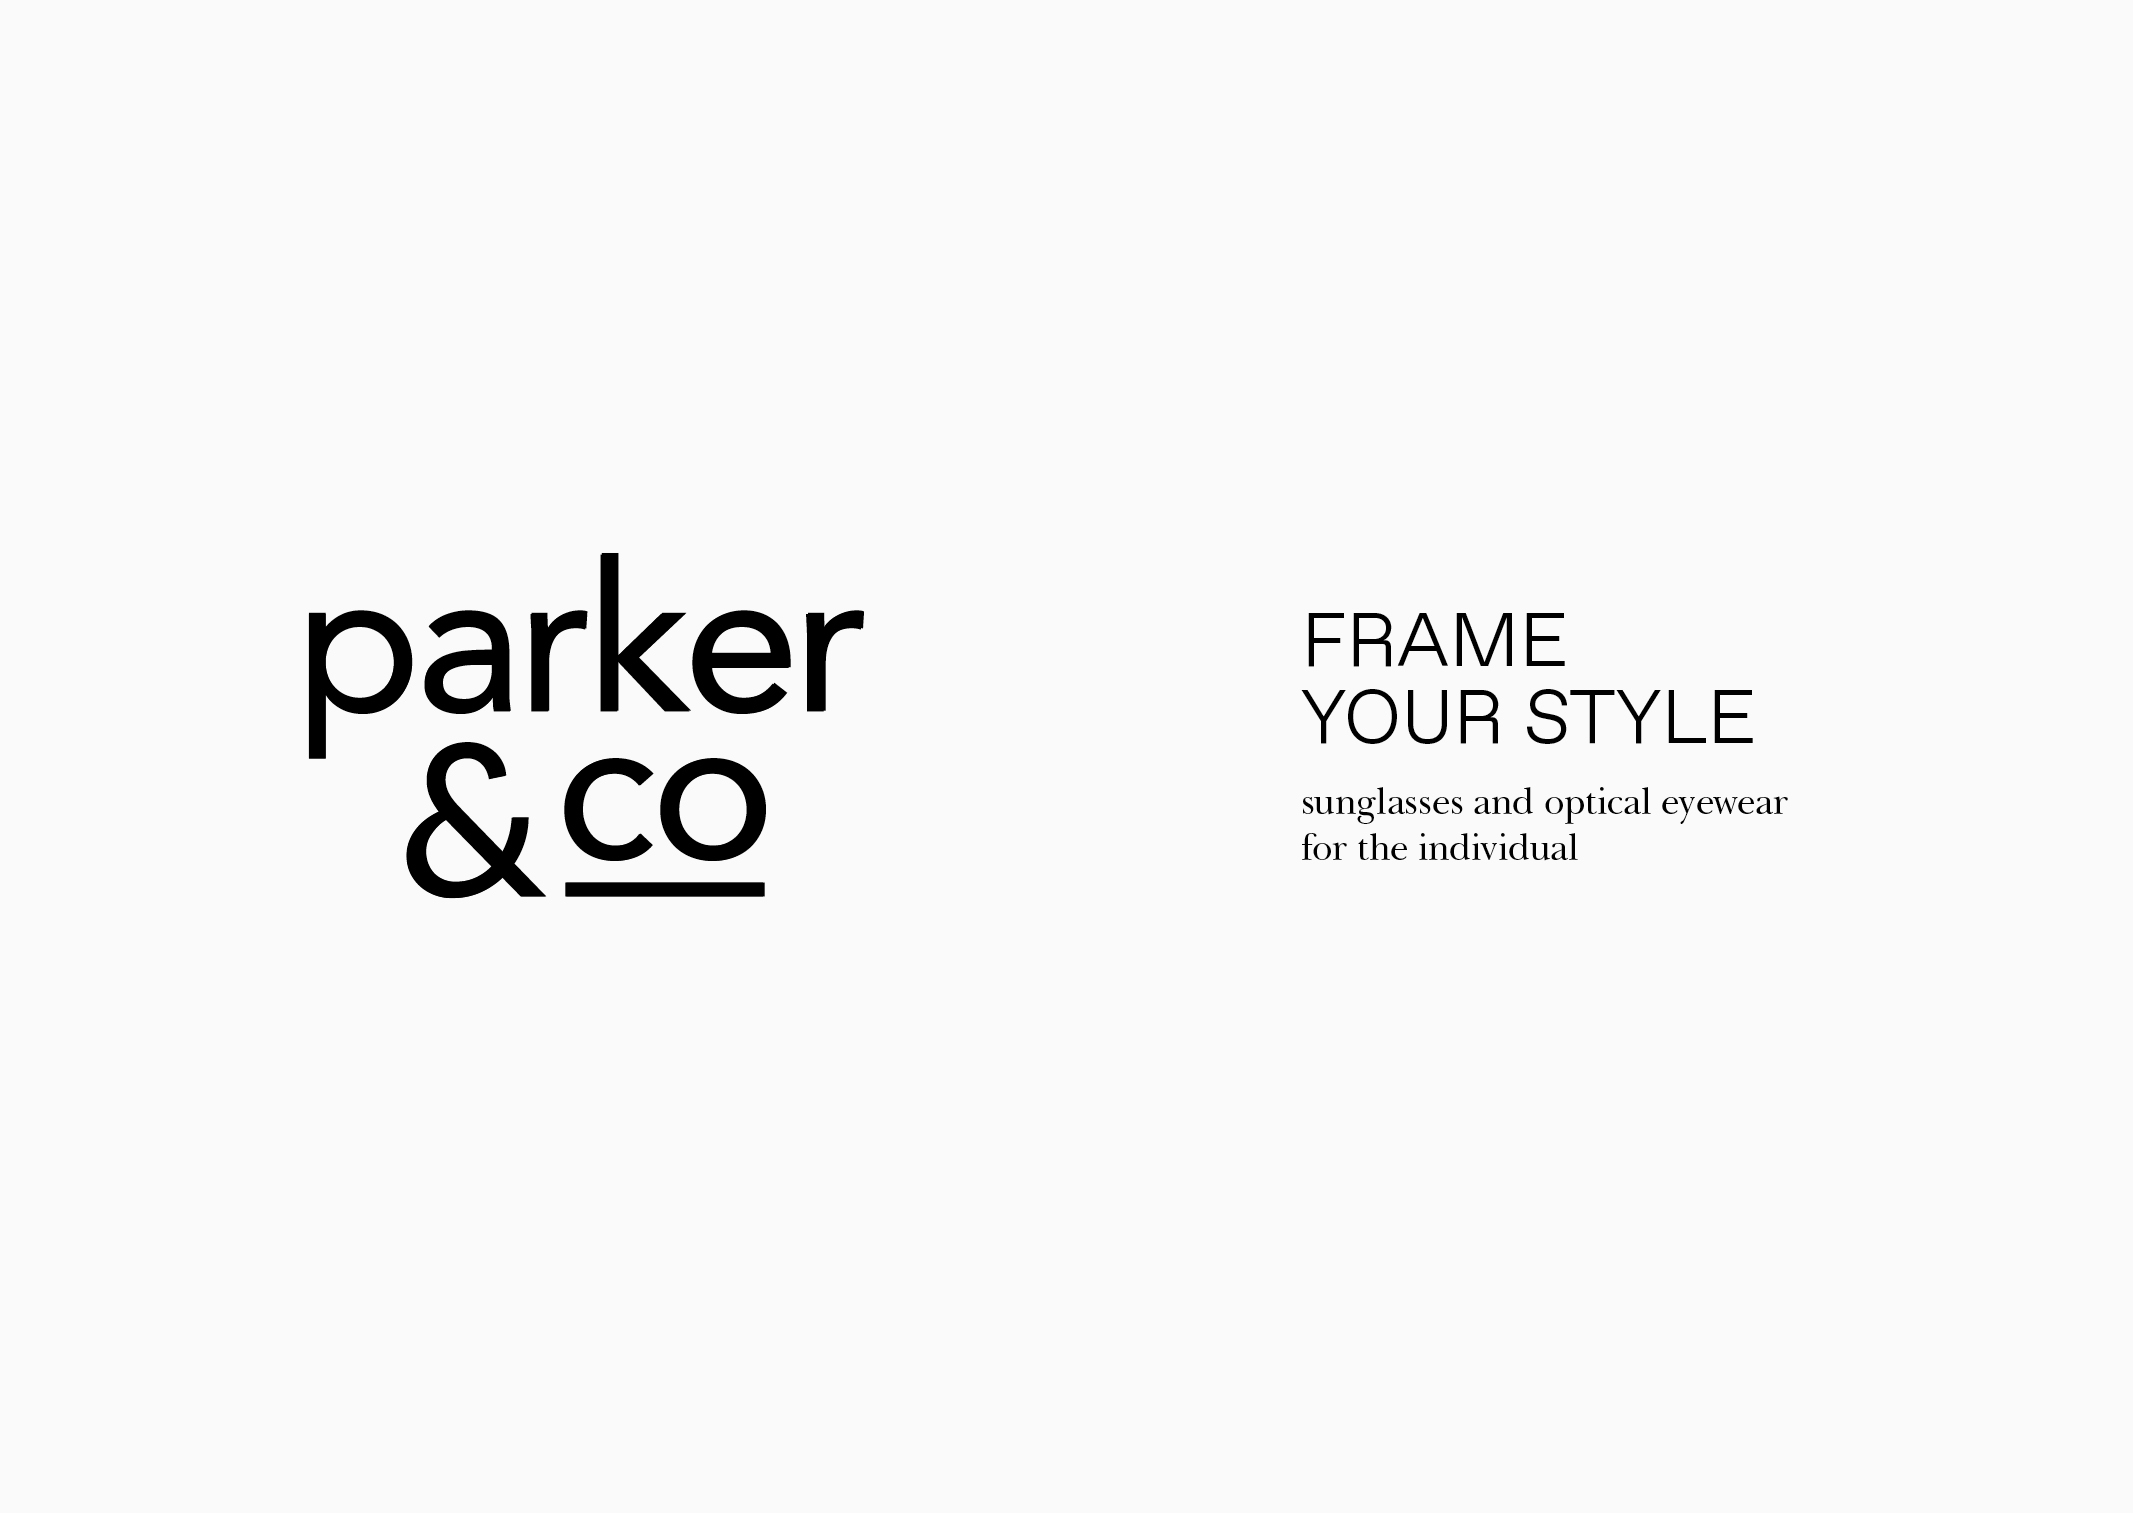 Parker and Co Eyewear – Frame your style – positioning line